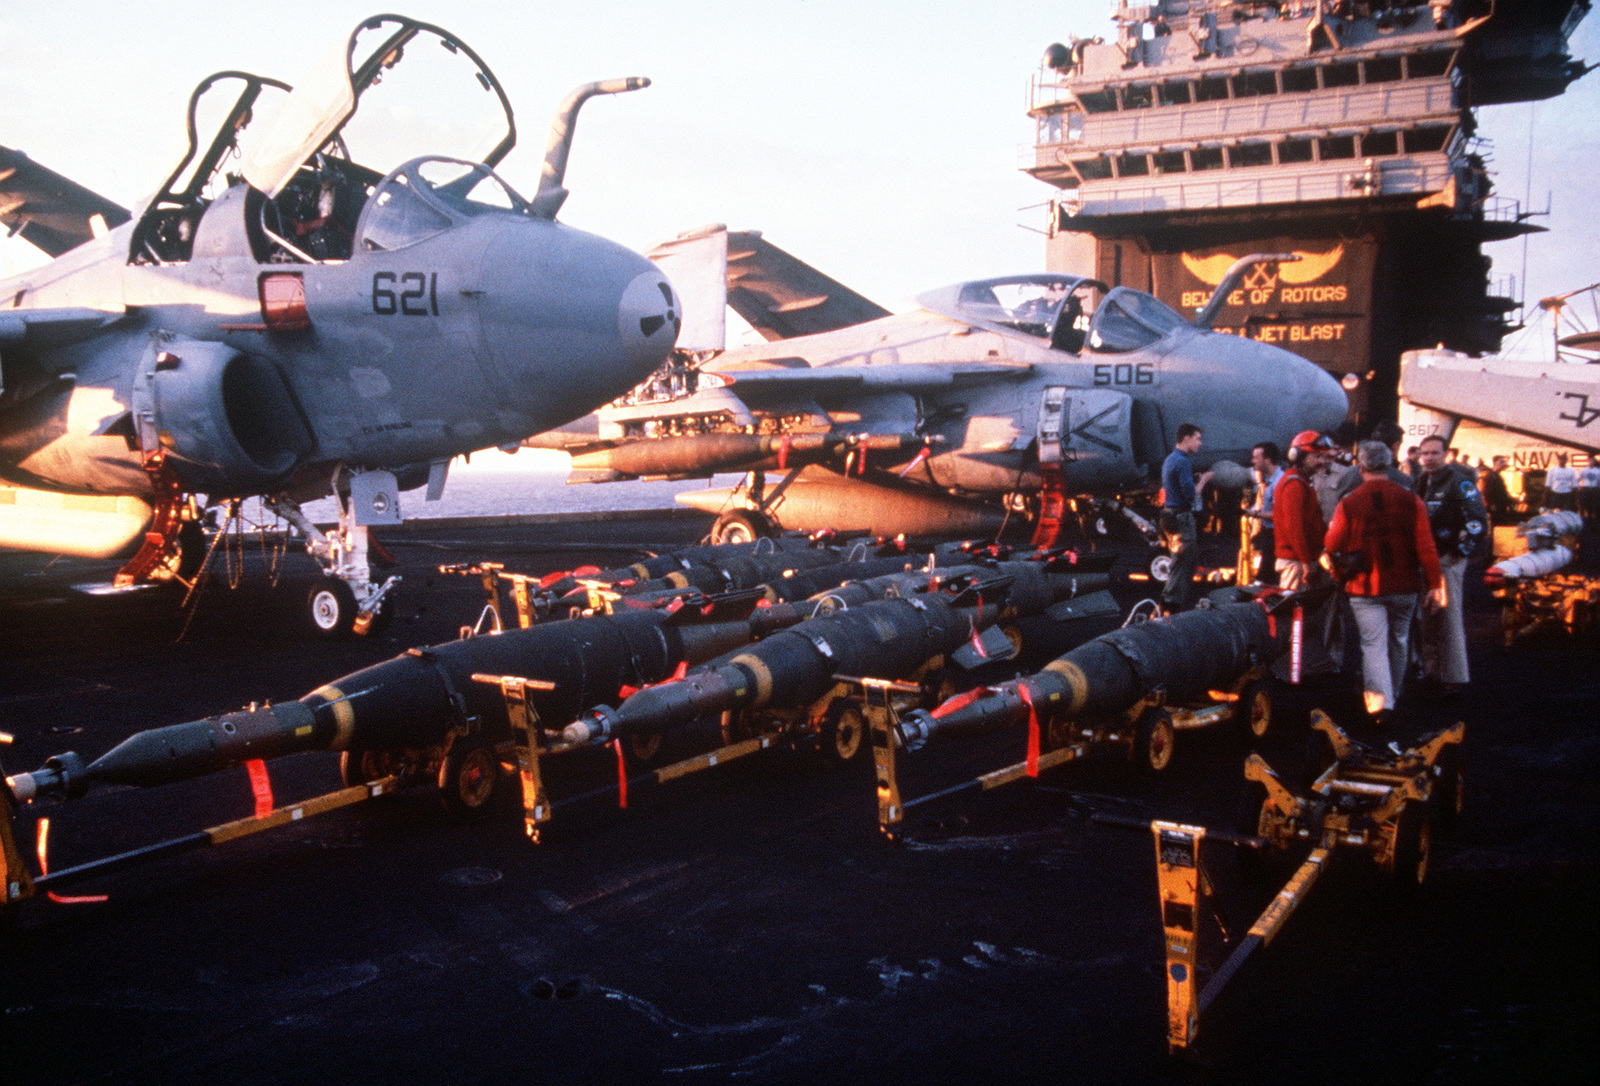 Several GBU-16B/B Paveway II laser-guided bombs rest on bomb skids on the flight deck of the aircraft carrier USS JOHN F. KENNEDY (CV-67) during Operation Desert Storm. A Tactical Electronic Warfare Squadron 130 (VAQ-130) EA-6B Prowler aircraft, left, and an Attack Squadron 75 (VA-75) A-6E Intruder aircraft are in the background